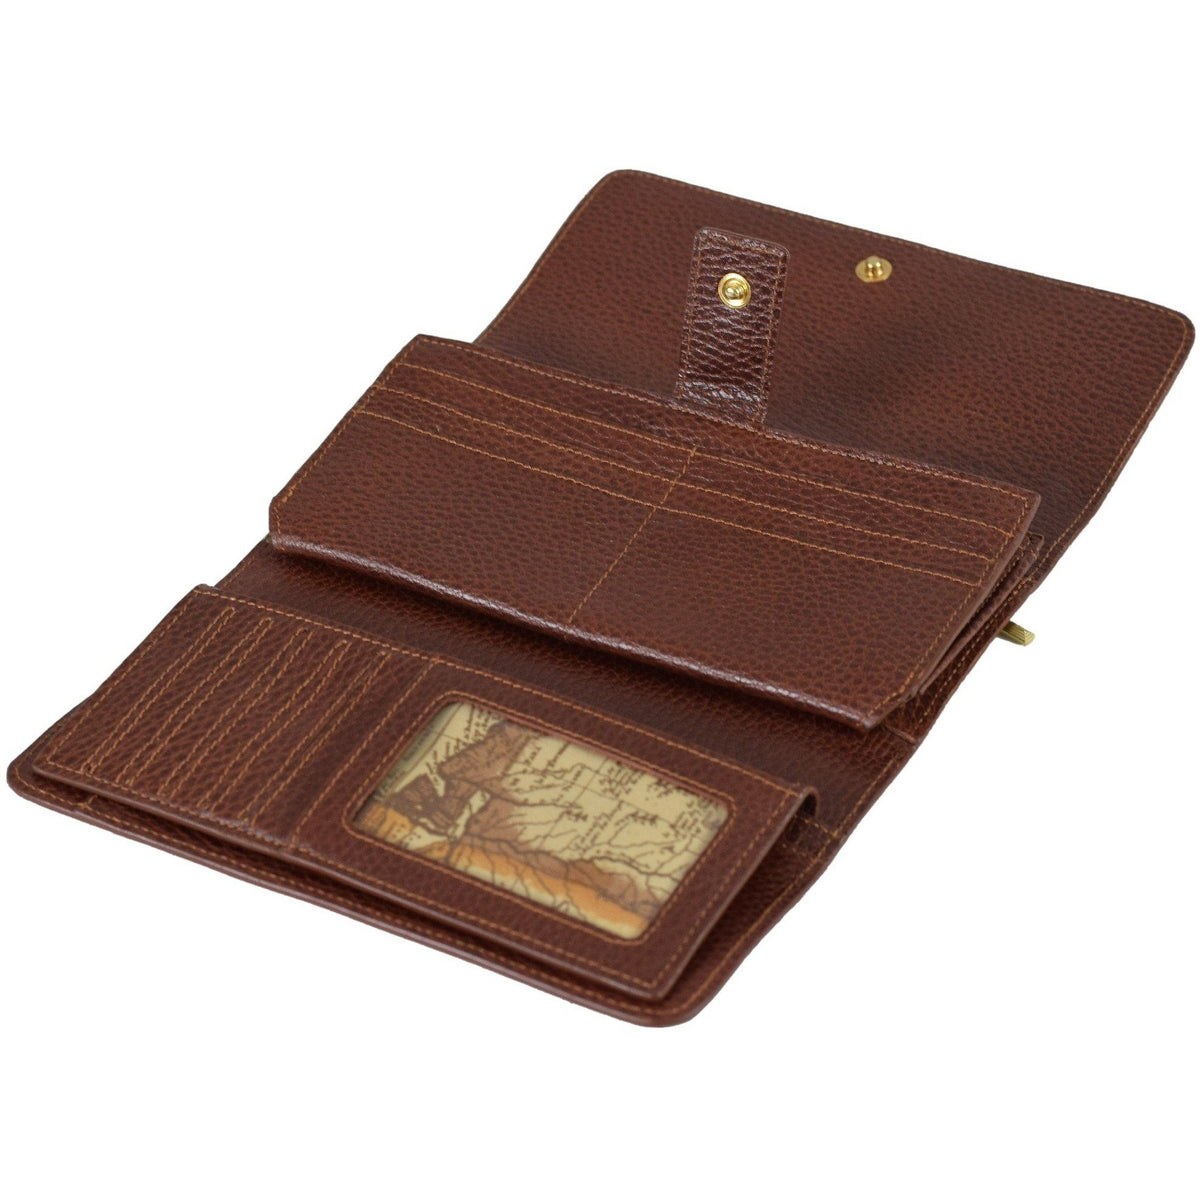 Bisenzio Wallet, Wallet | LAND Leather